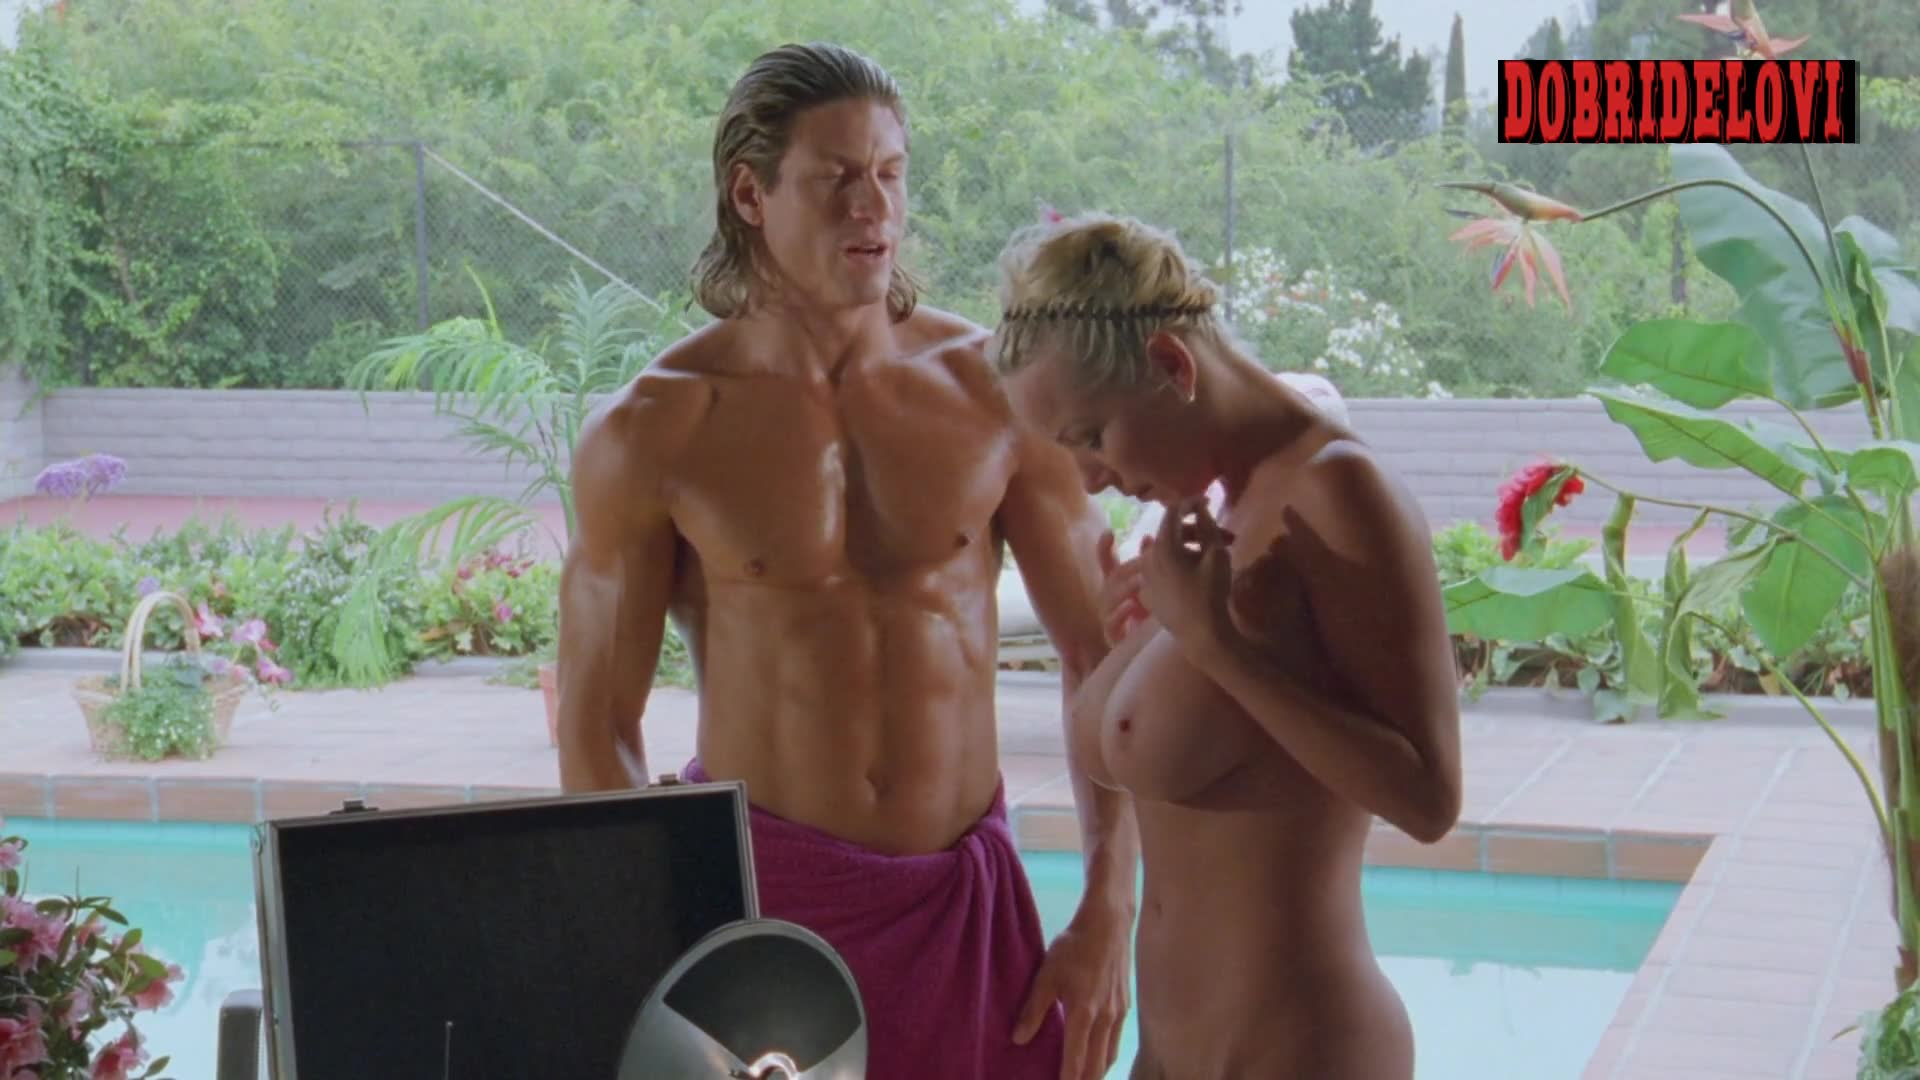 Julie K. Smith undressing scene from L.E.T.H.A.L. Ladies: Return to Savage Beach